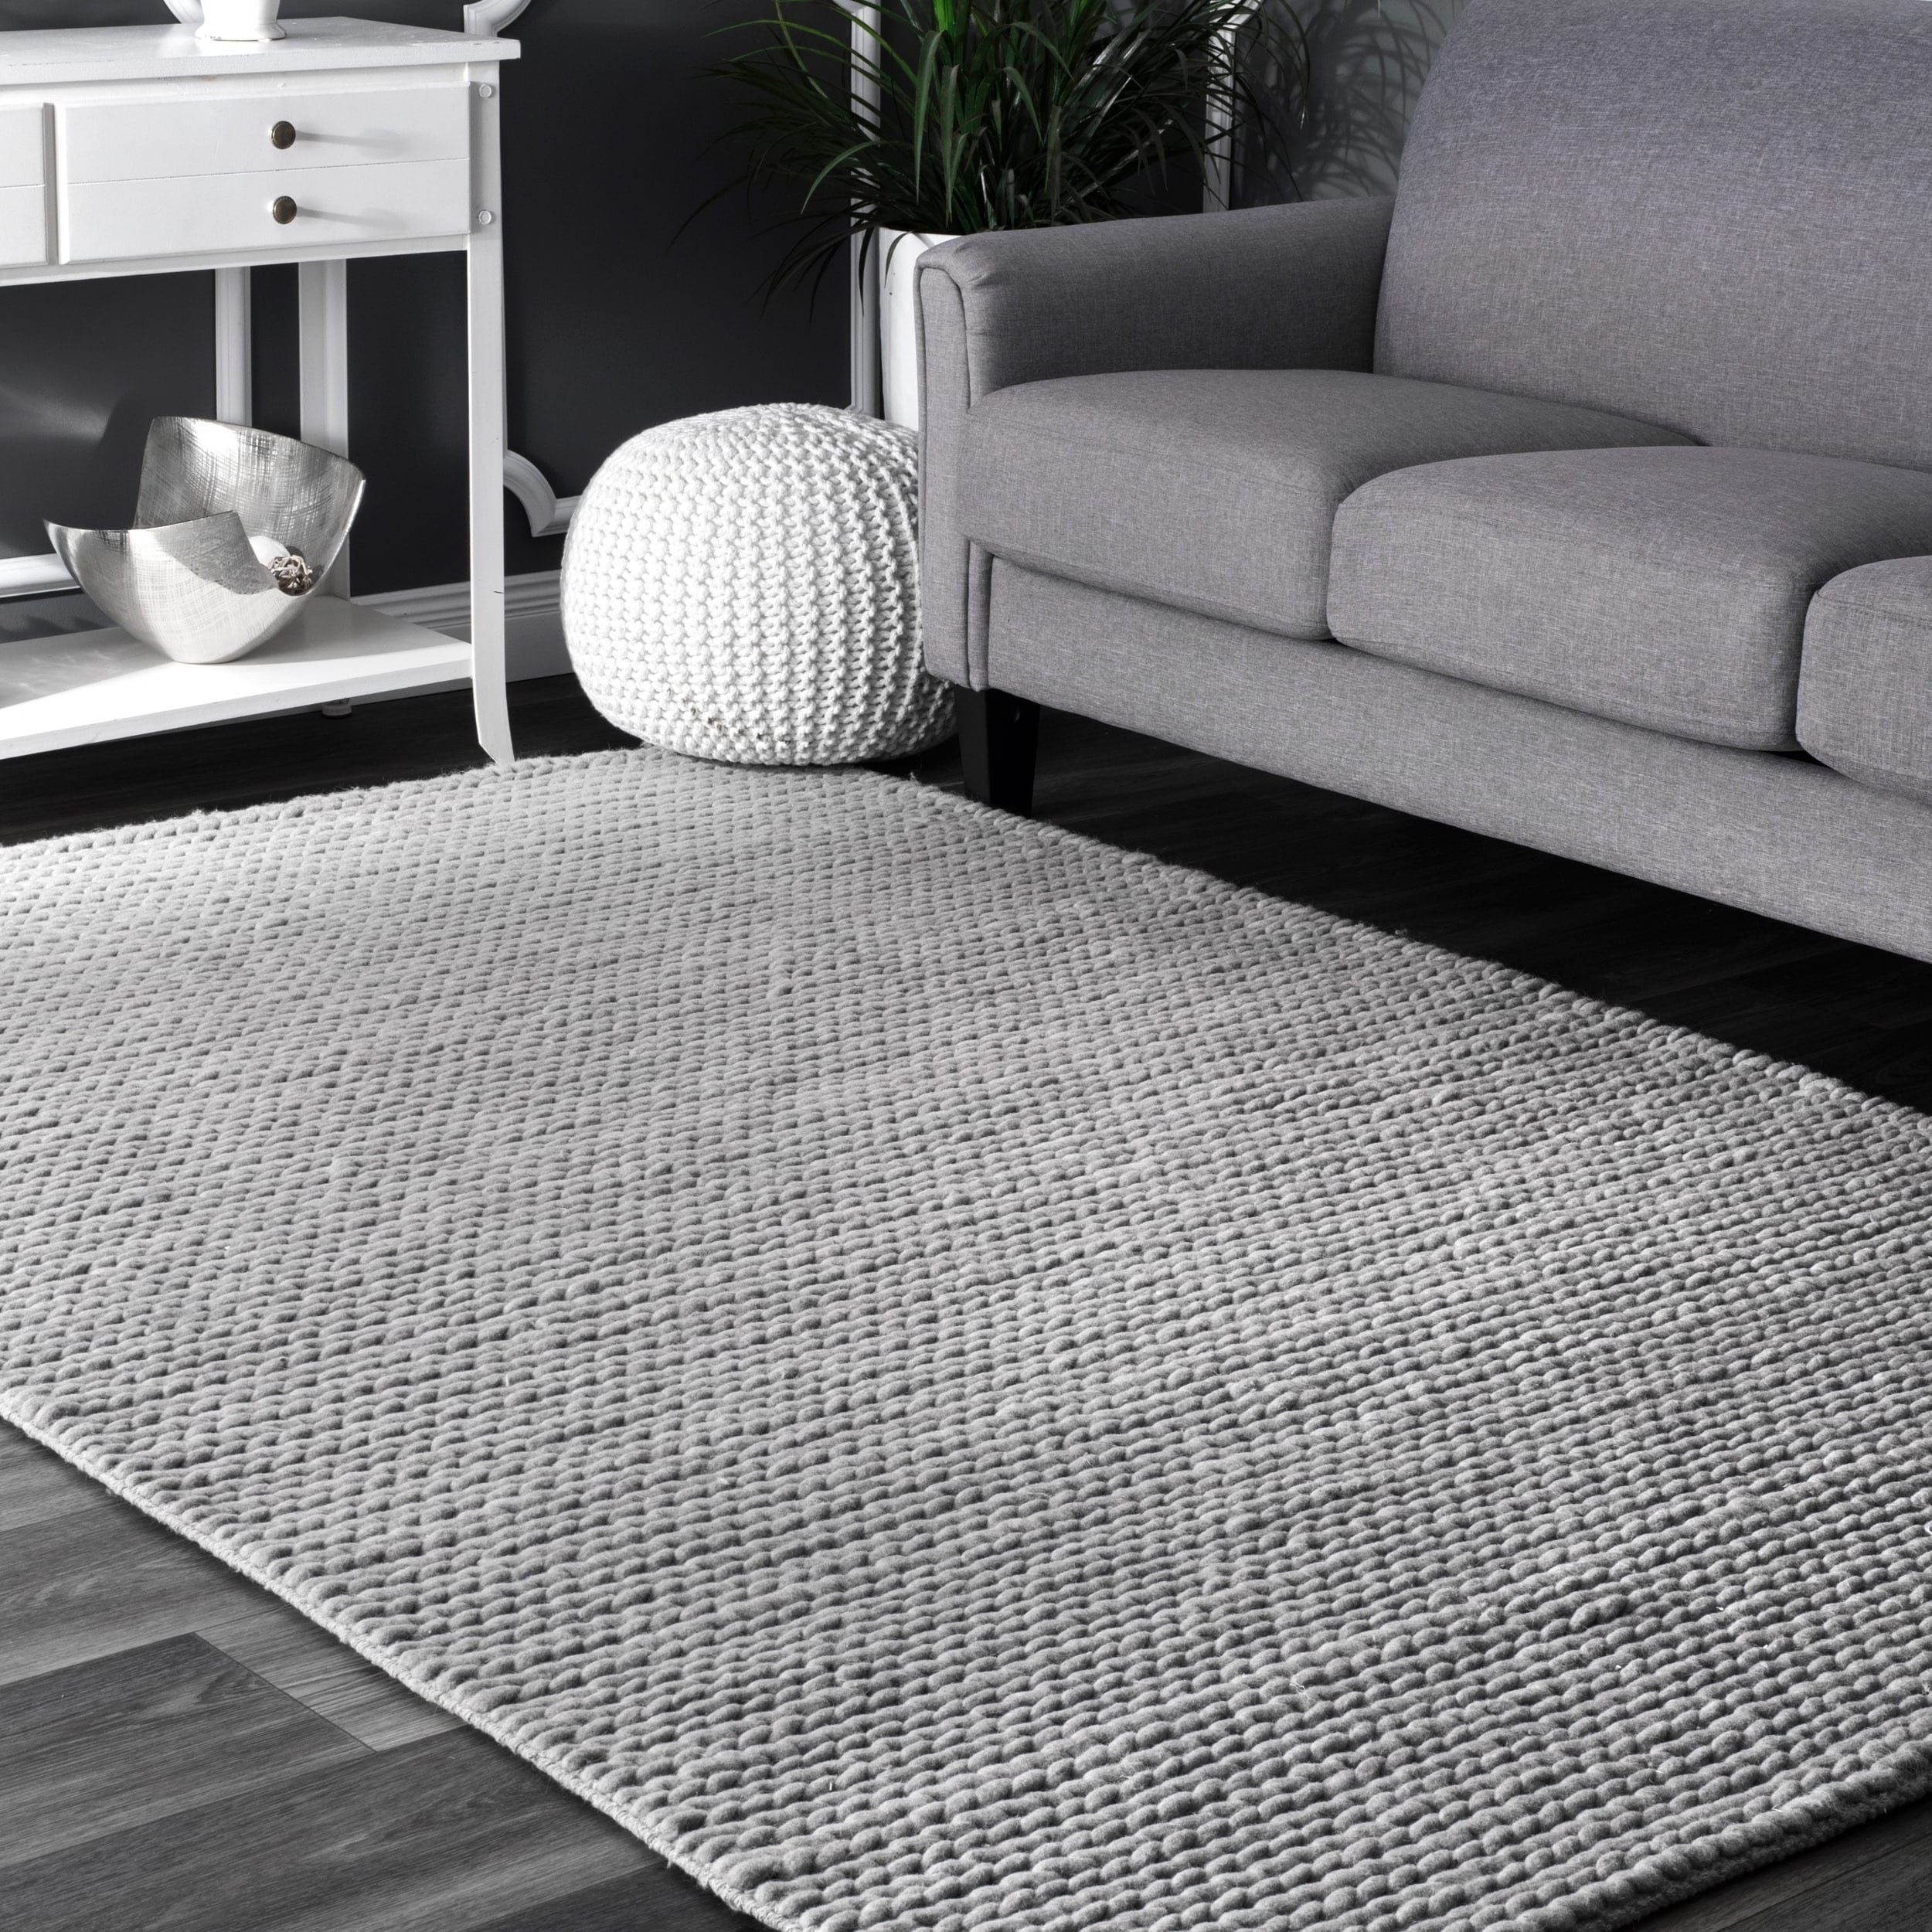 Nuloom Handmade Braided Cable White New Zealand Wool Rug